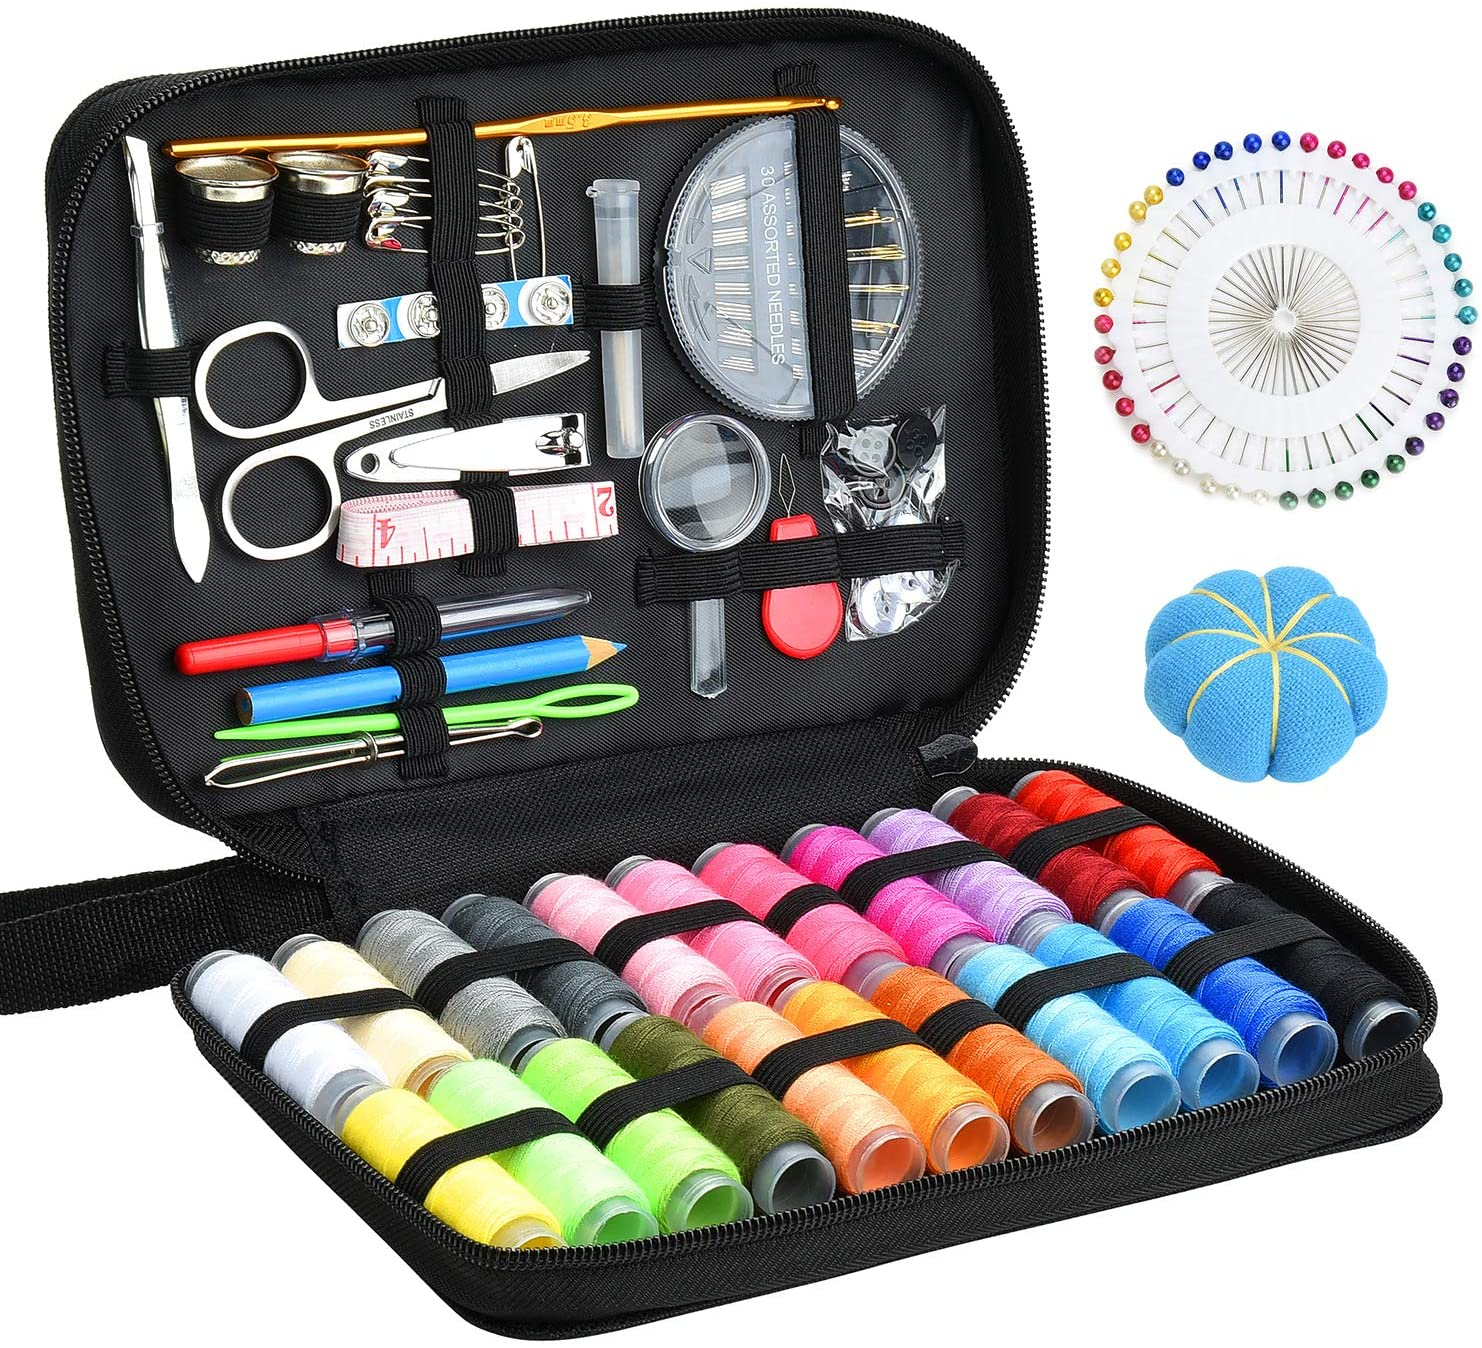 Marcoon Sewing KIT, DIY Sewing Supplies with Sewing Accessories, Portable Mini Sewing Kit for Beginner, Traveller and Emergency Clothing Fixes, with Premium Black Carrying Case (B)